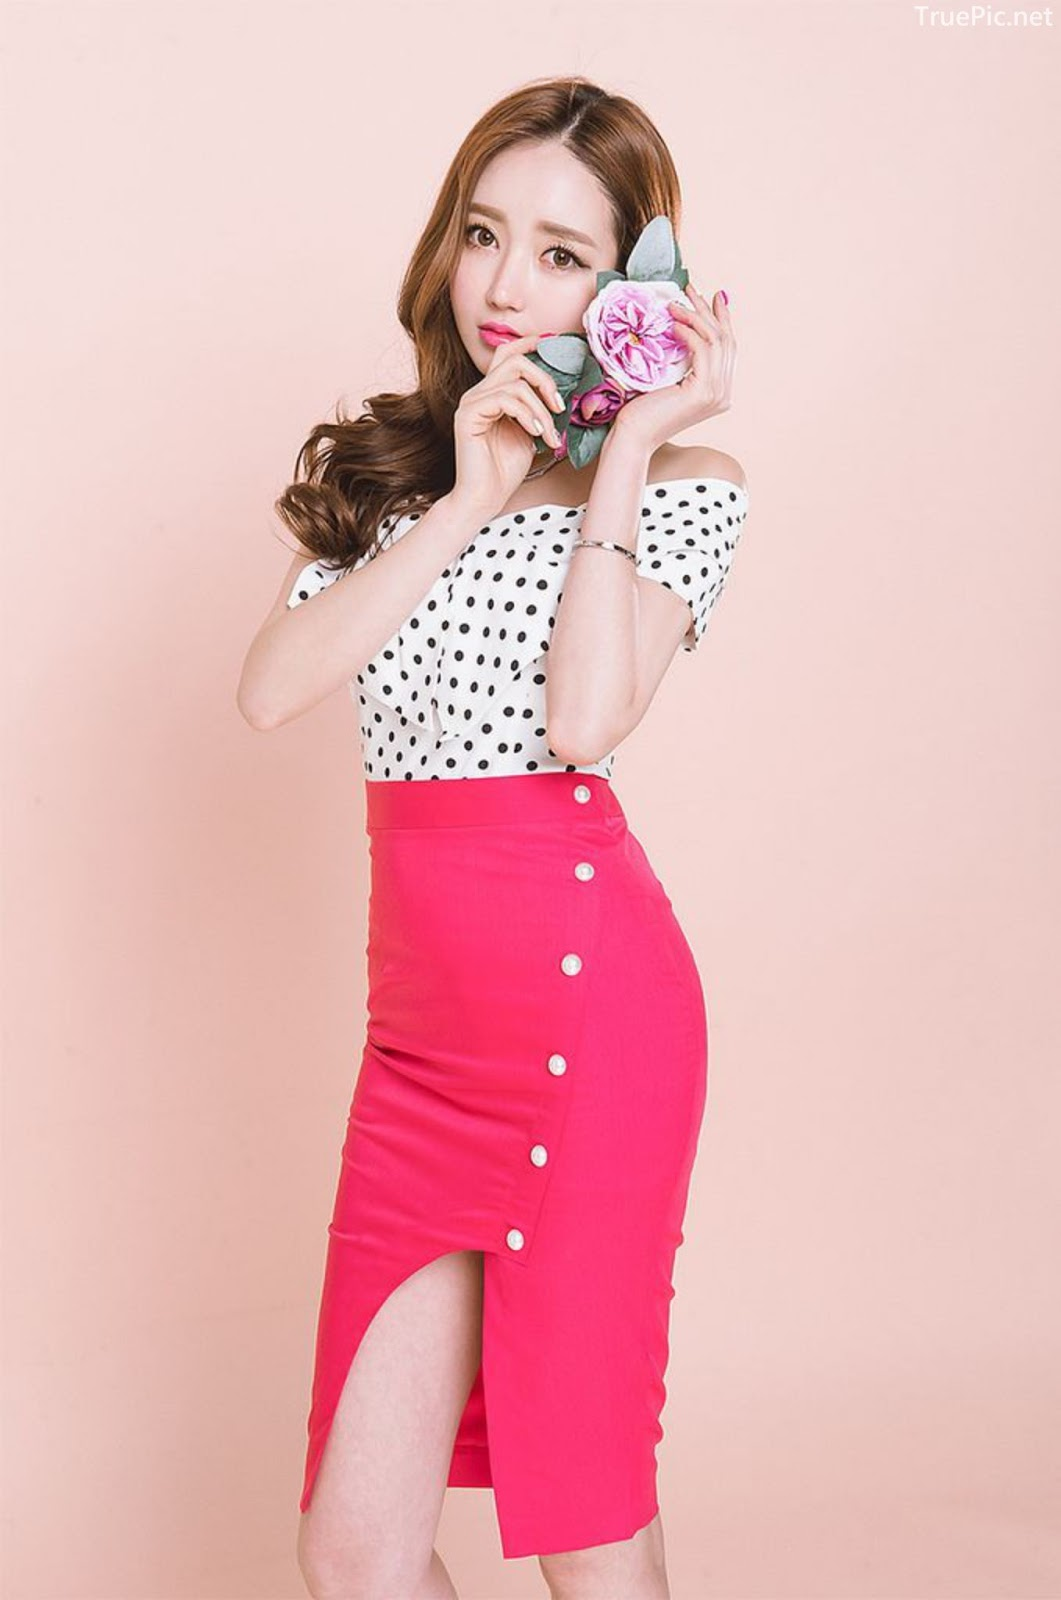 Lee Yeon Jeong - Indoor Photoshoot Collection - Korean fashion model - Part 4 - Picture 4